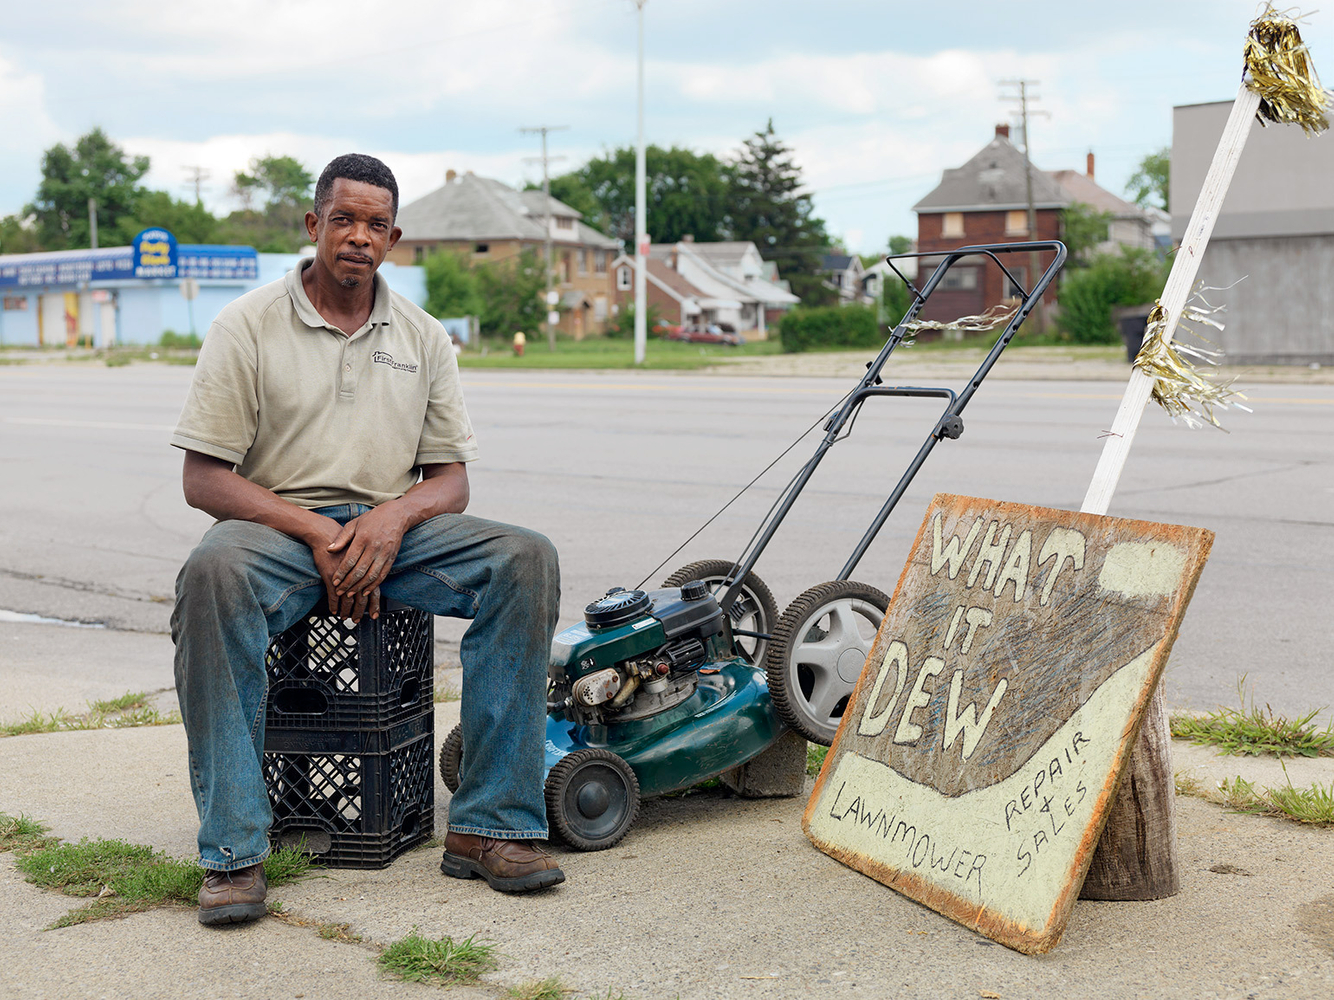 Gus, Lawnmower Repair Man, Gratiot Ave., Detroit 2011